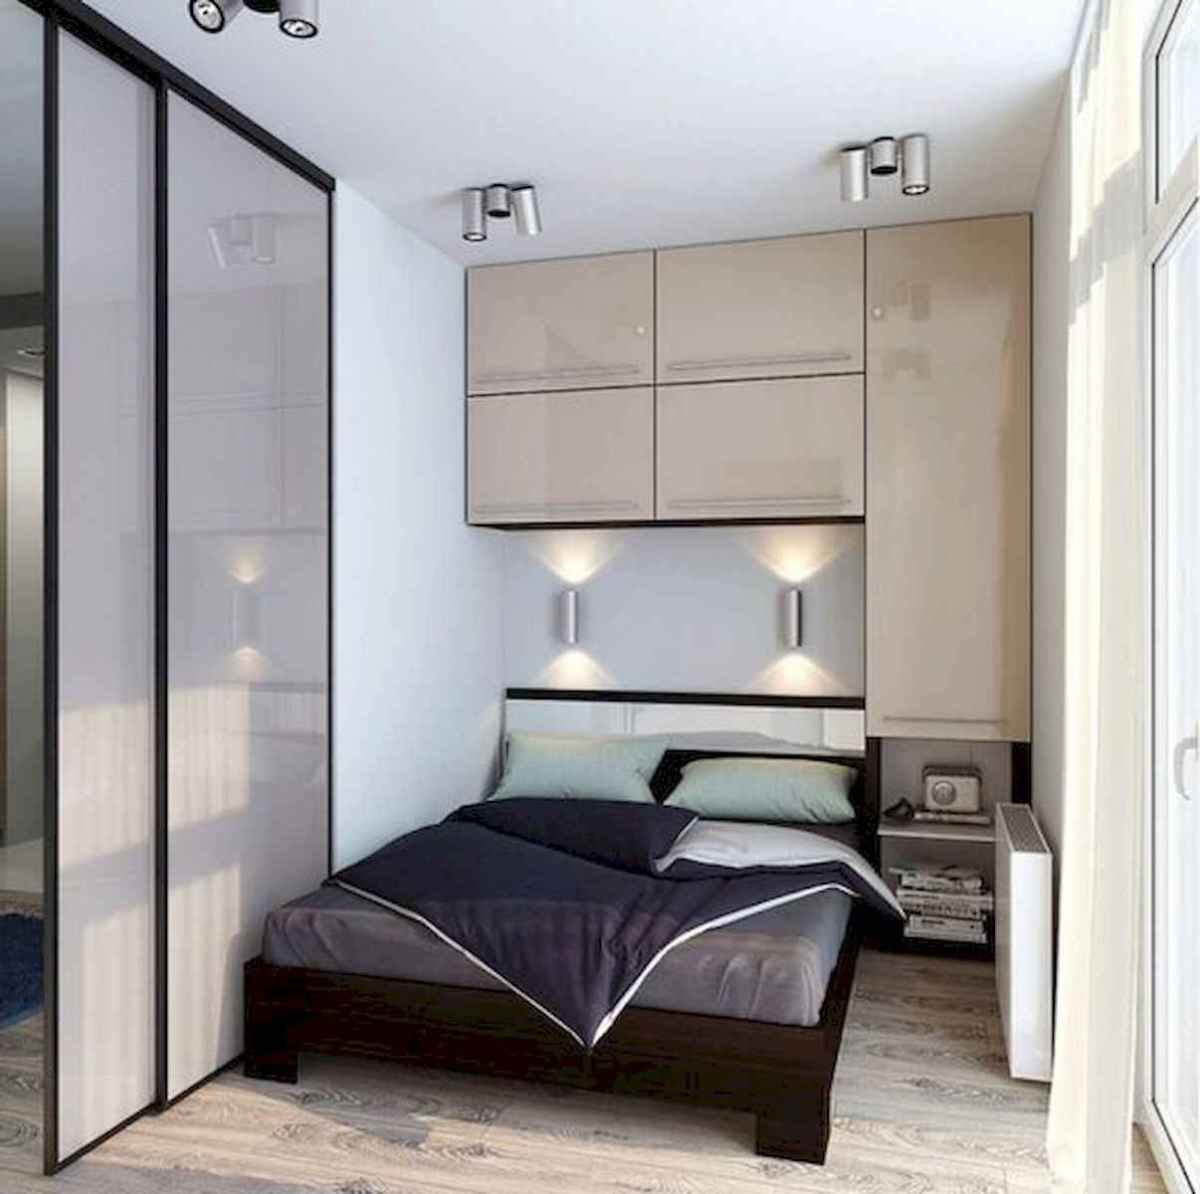 50 Stunning Small Apartment Bedroom Design Ideas and Decor (35)